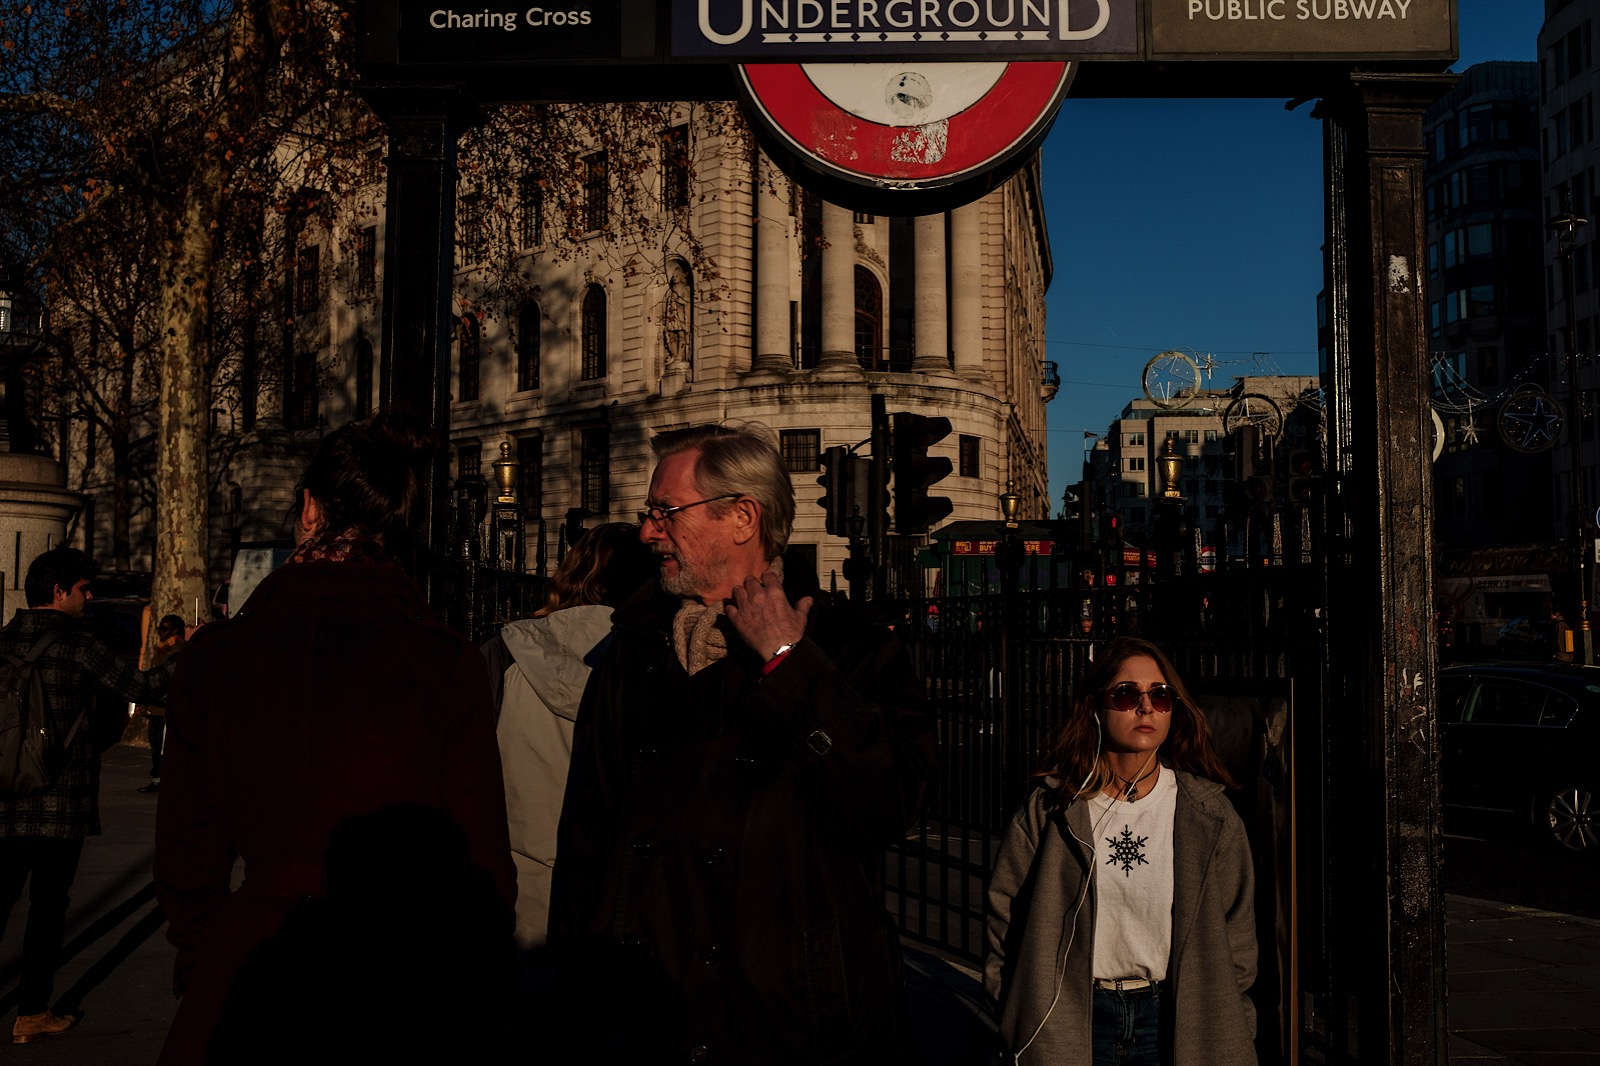 Street Photography in Trafalgar Square showing people coming from underground